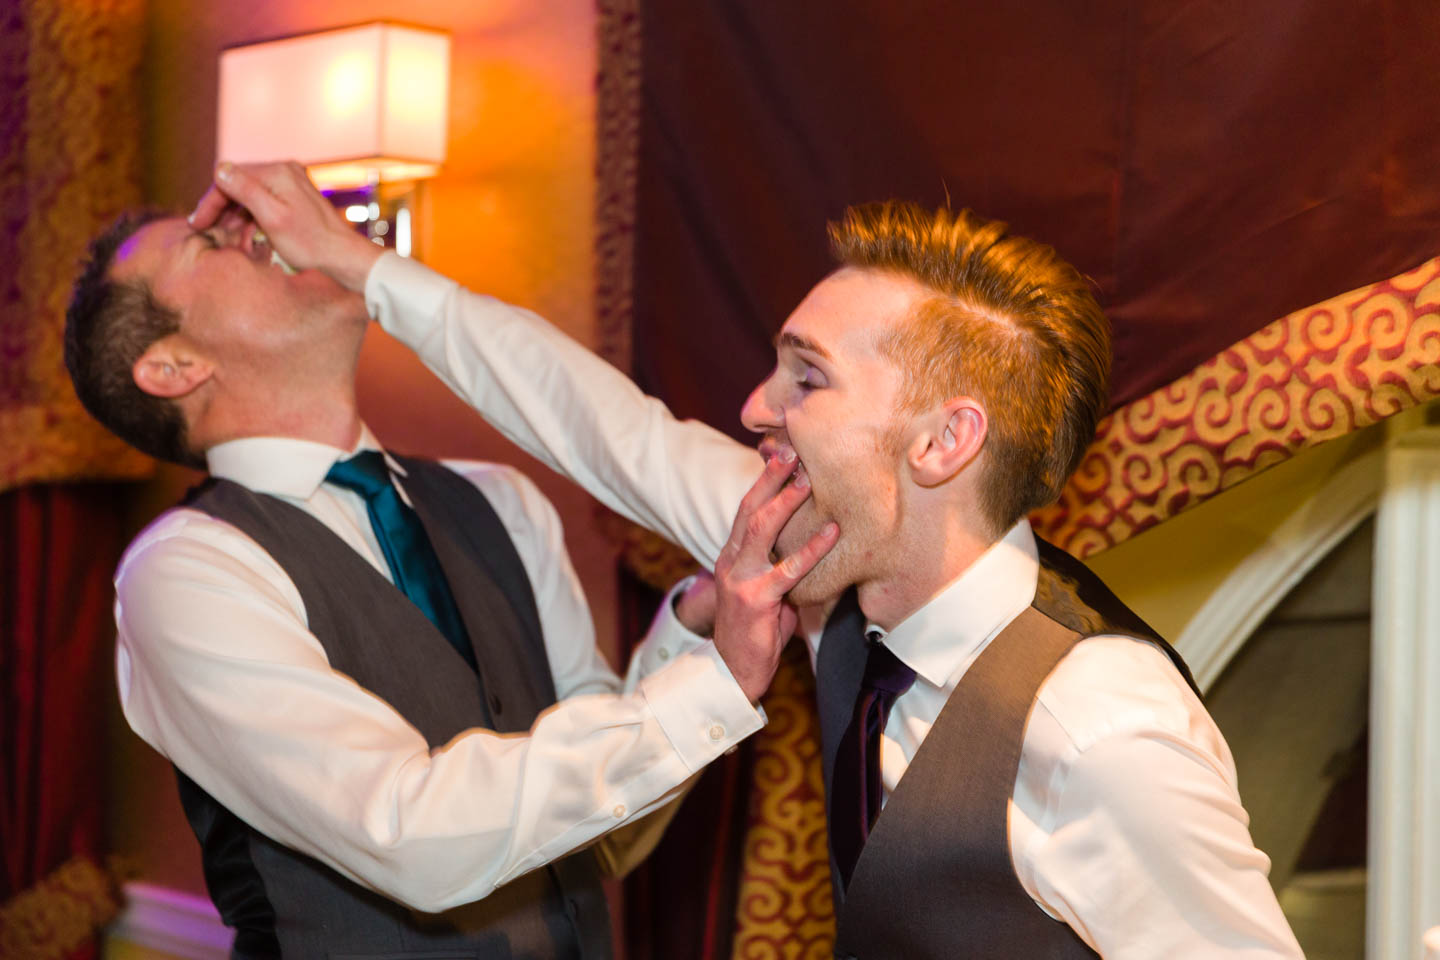 Grooms smash the wedding cake in each other's faces